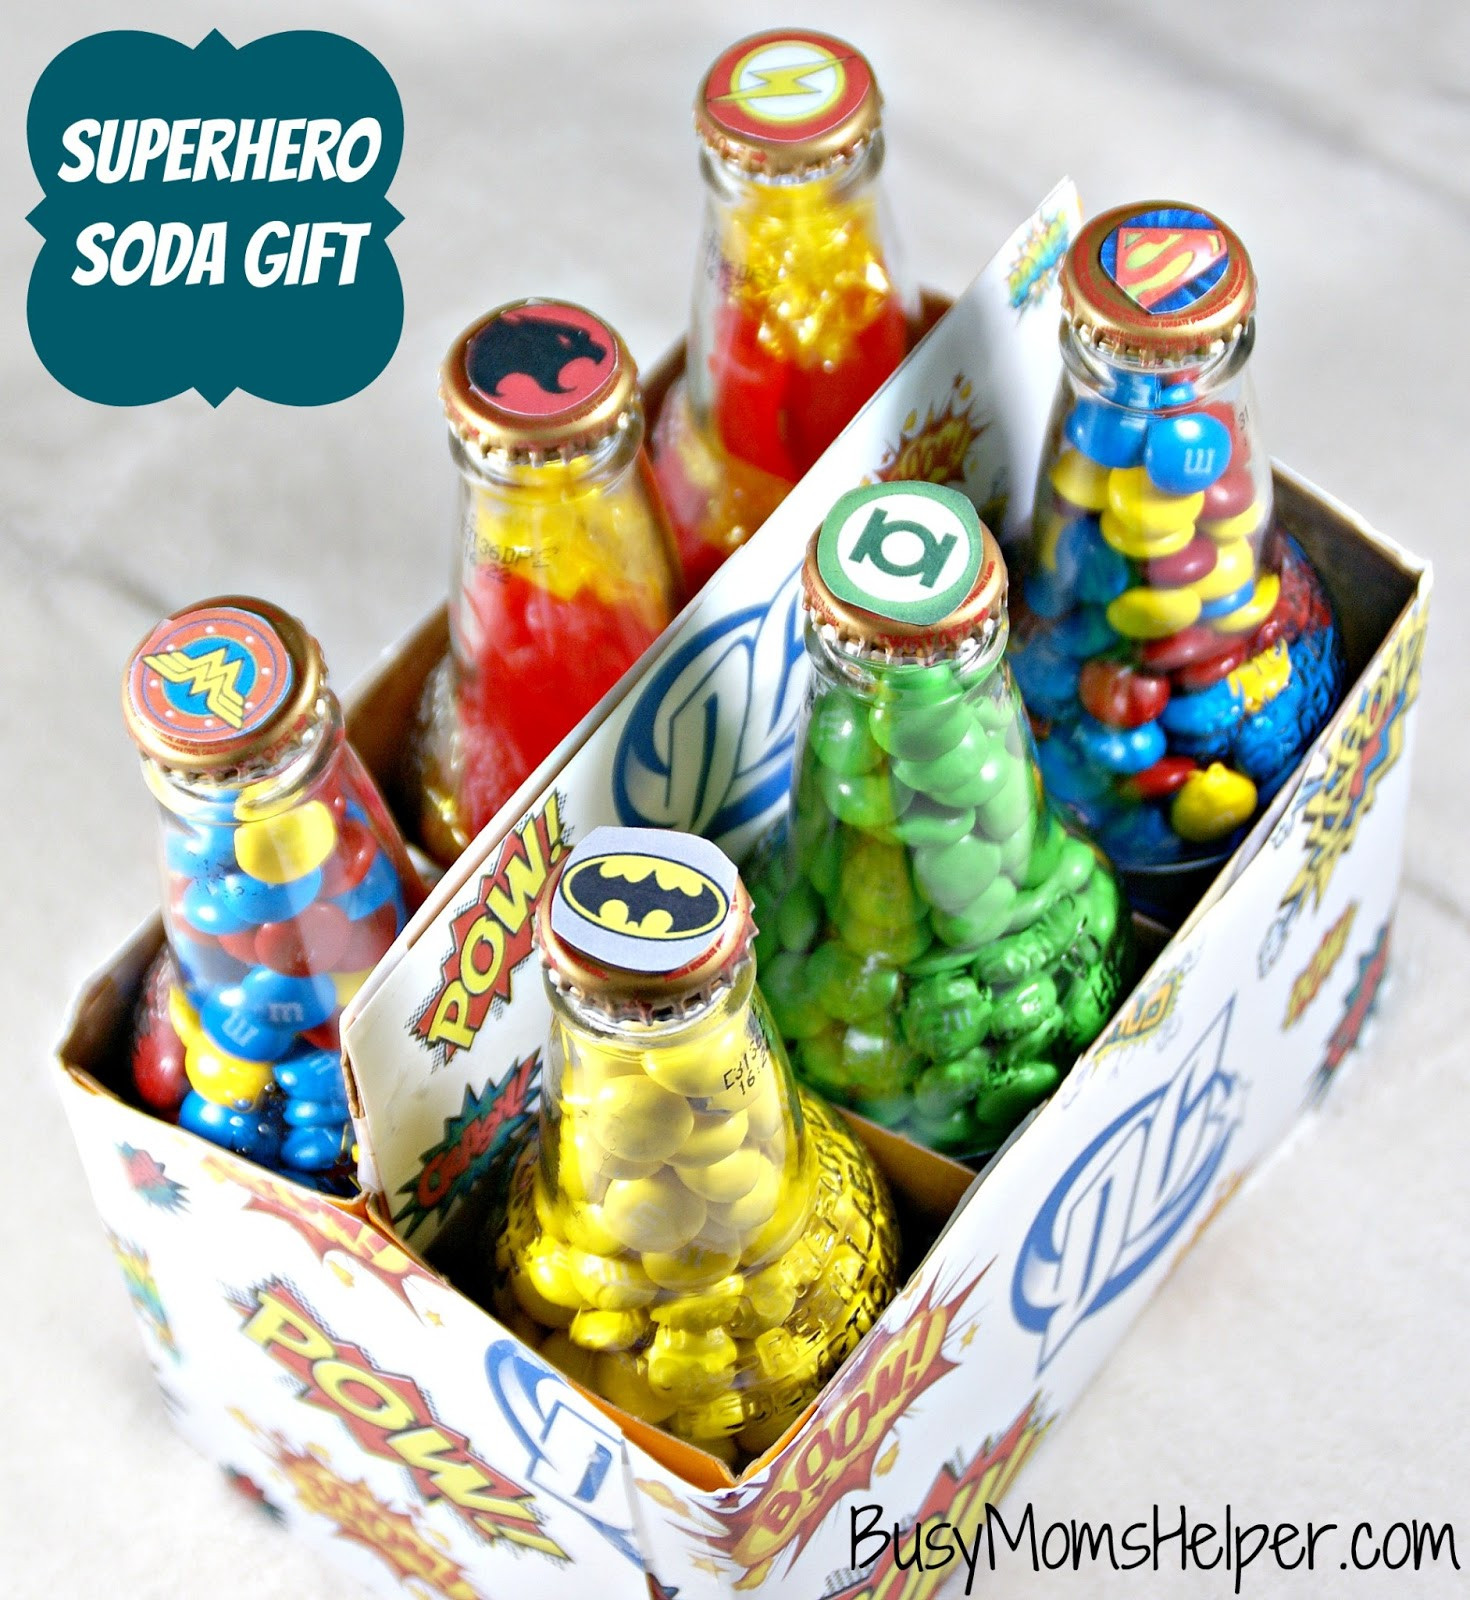 Best ideas about Superheroes Gift Ideas . Save or Pin Superhero Soda Gift Busy Mom s Helper Now.